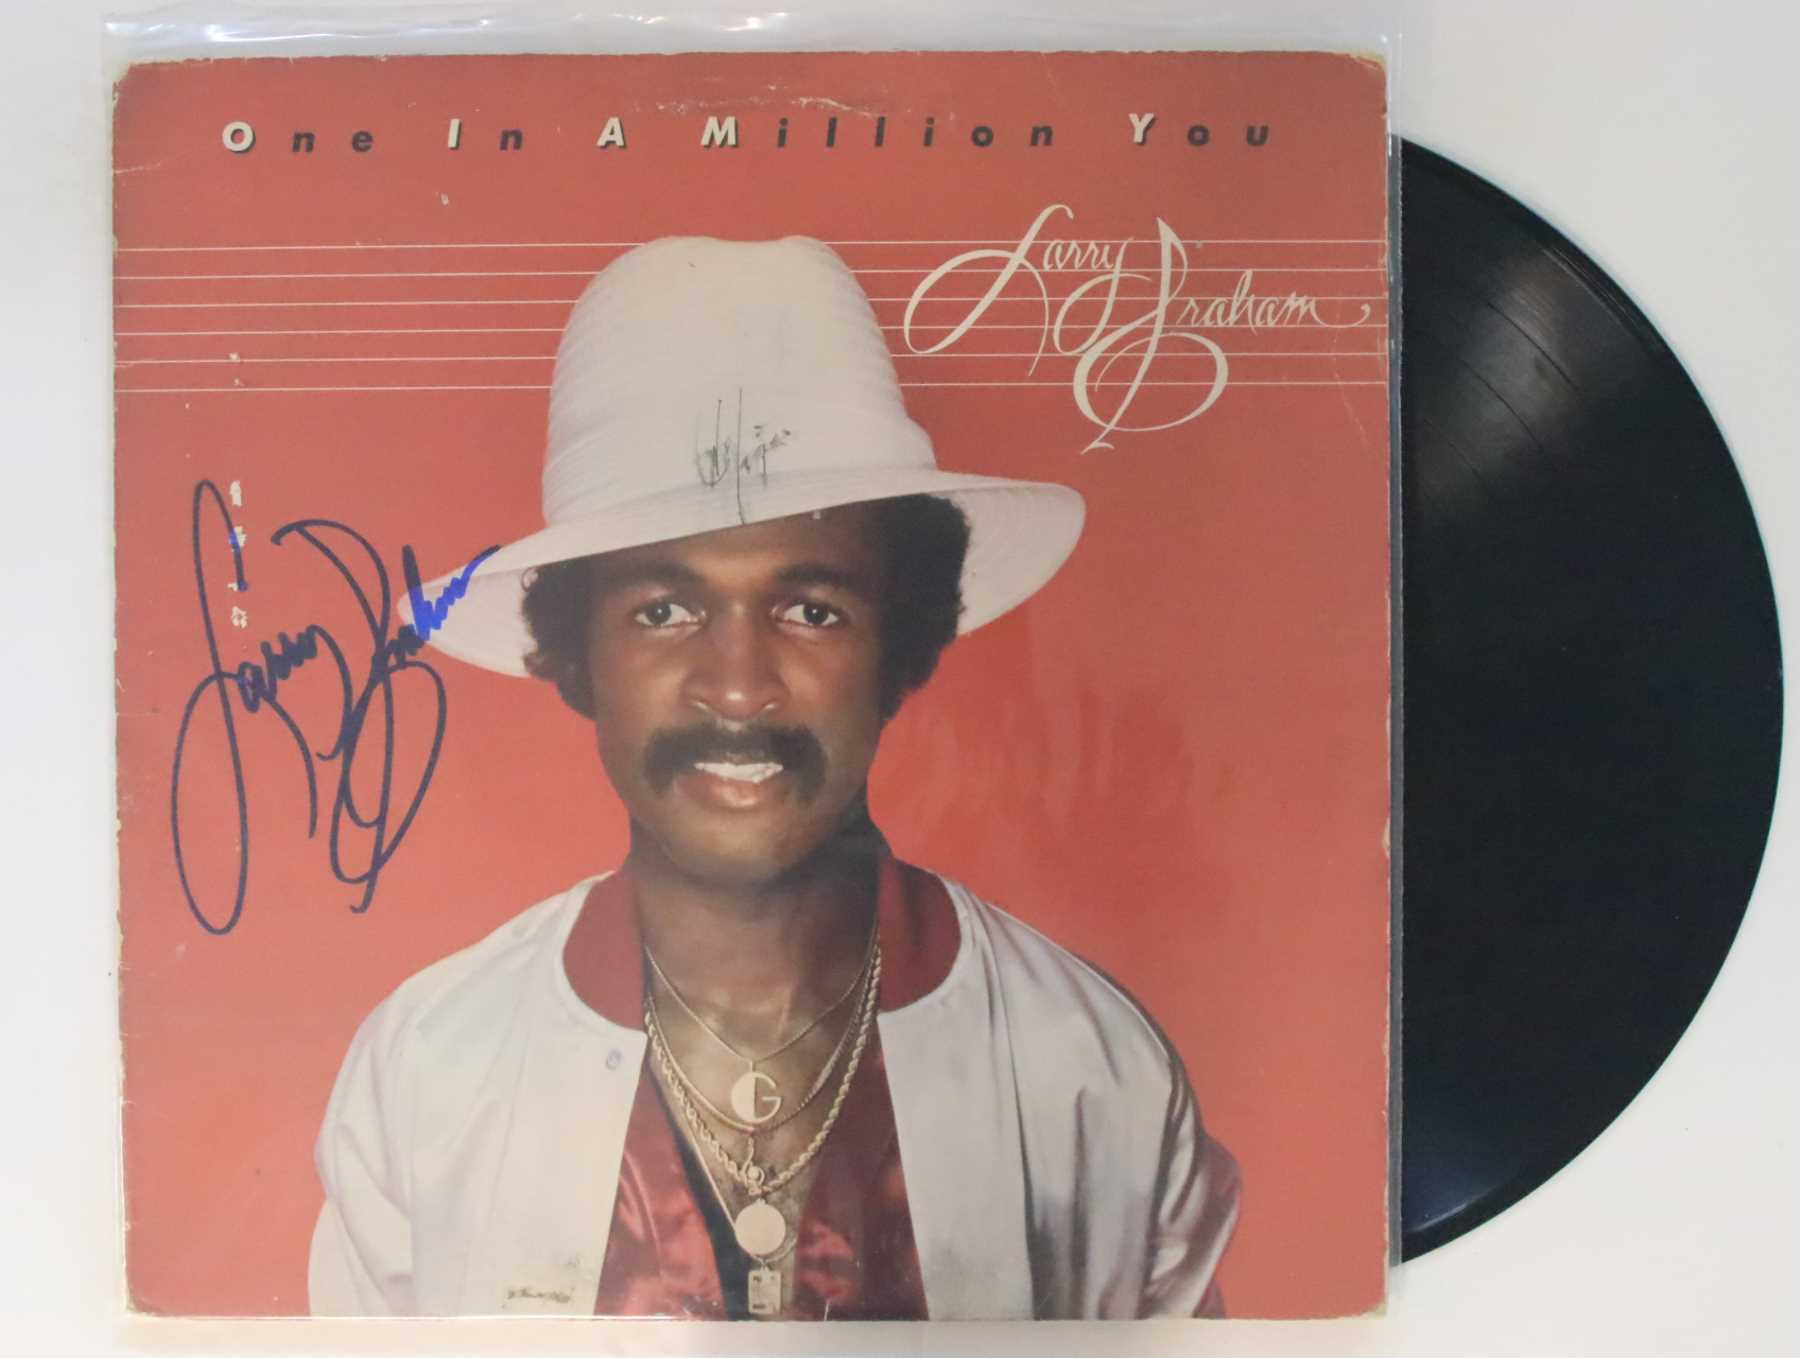 Larry Graham Signed Autographed One In a Million You Record Album w Proof Photo